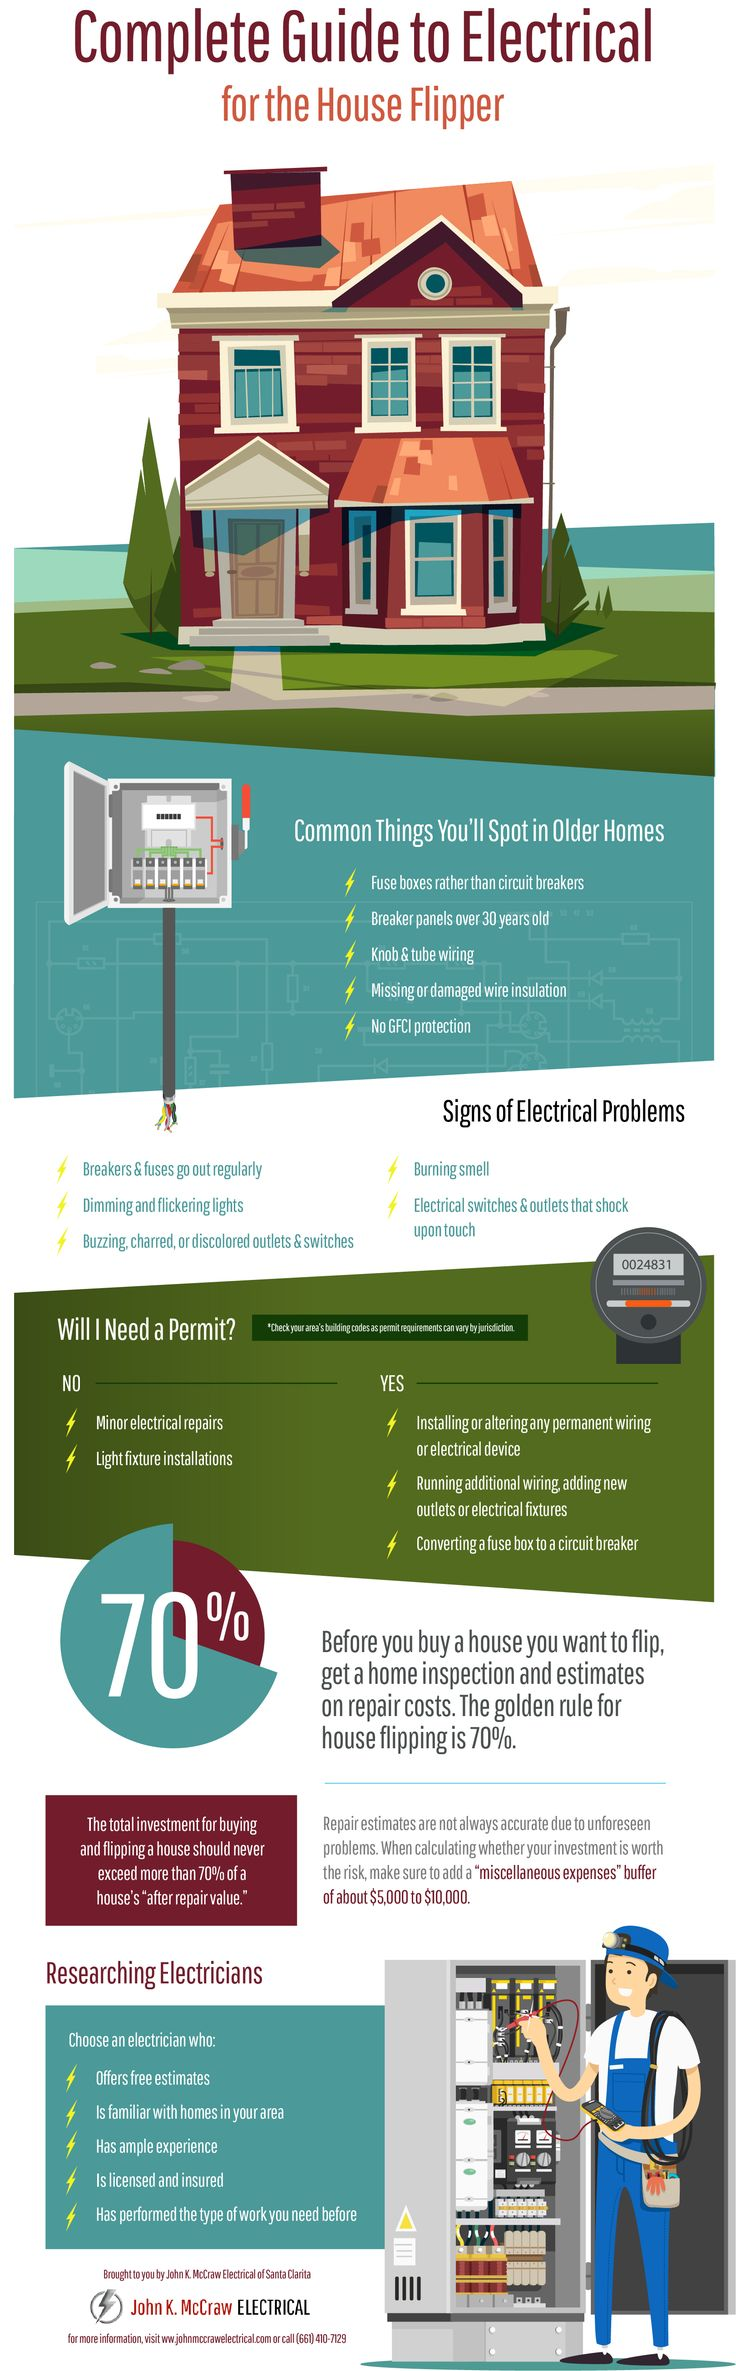 Complete Guide To Electrical For The House Flipper Real Estate General Home Wiring Todays Infographic From John K Mccraw Discusses Common Items In Older Homes What You Might Need A Permit And Some Due Diligence